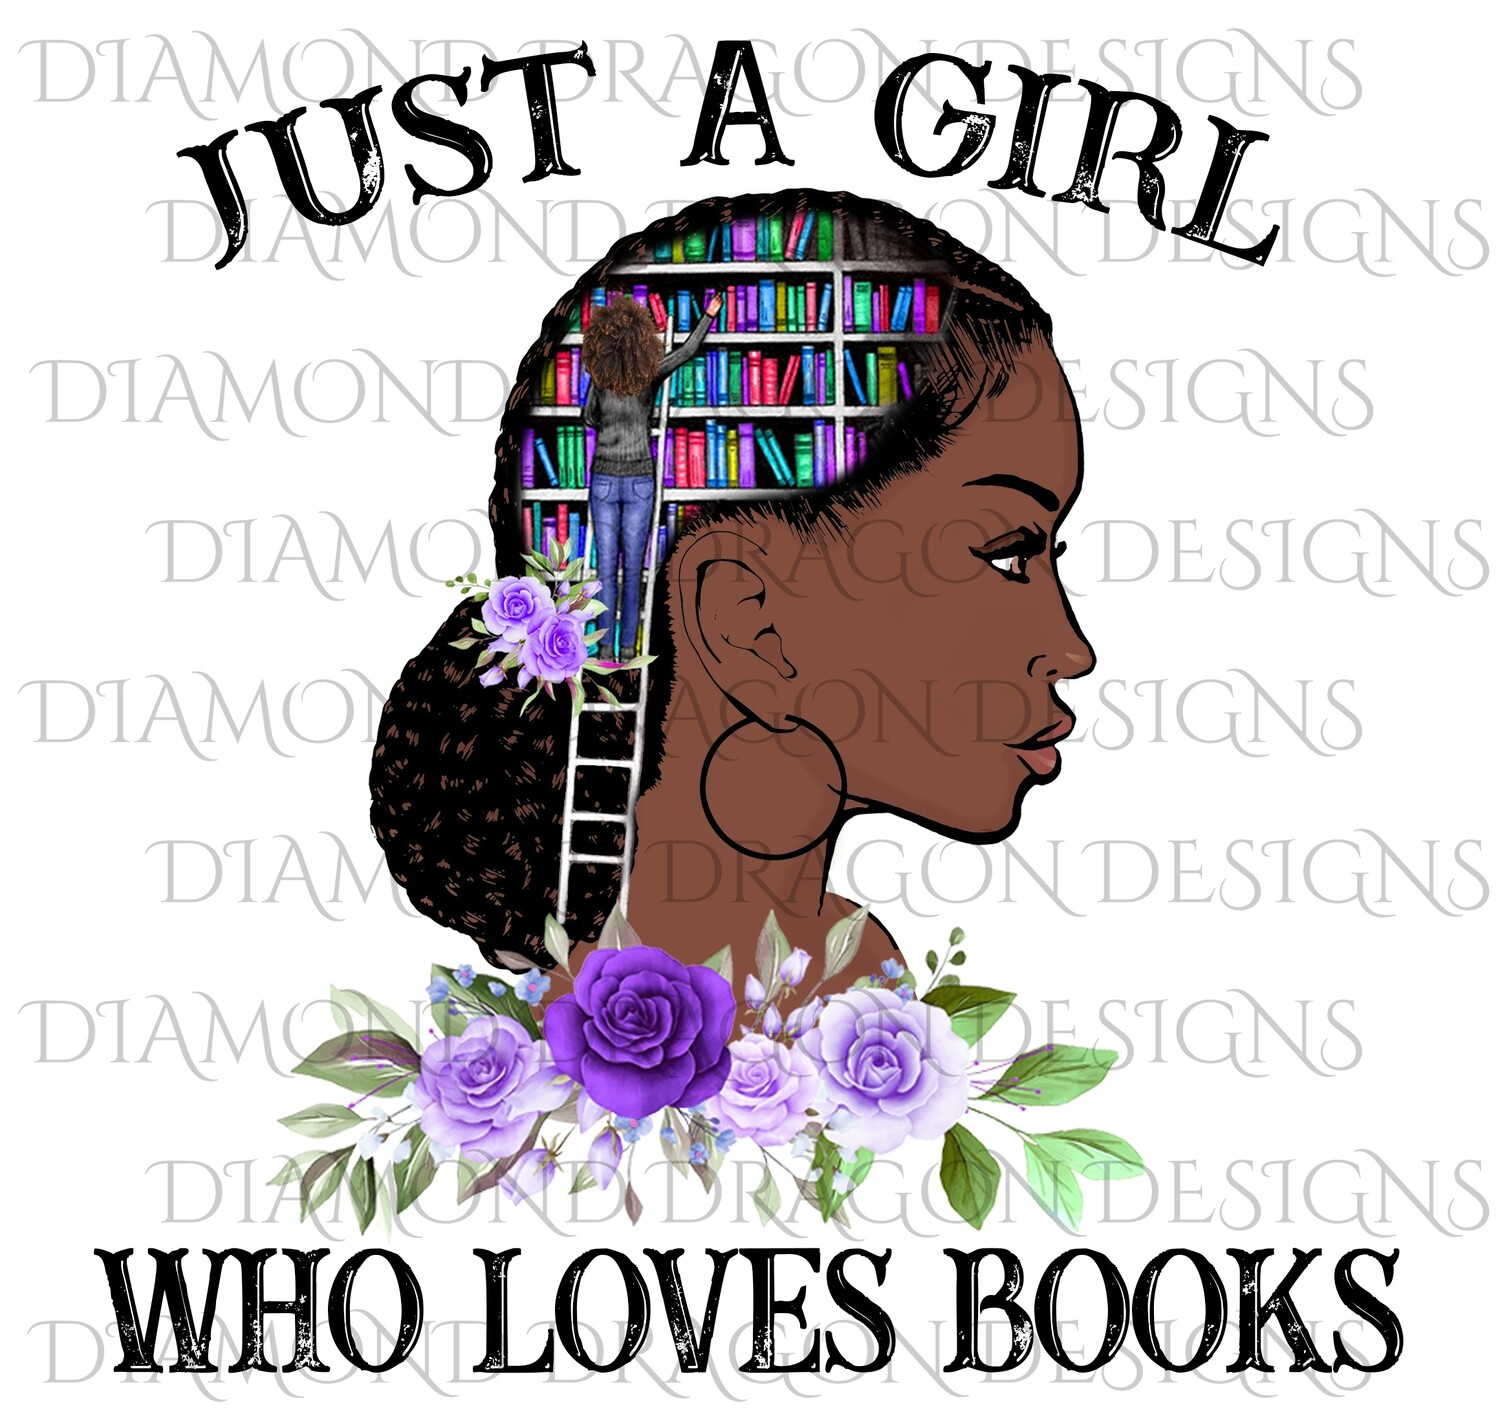 Books - Just a Girl Who Loves Books, Lady Library, Book Girl, Book Lover, Purple Floral, Digital Image